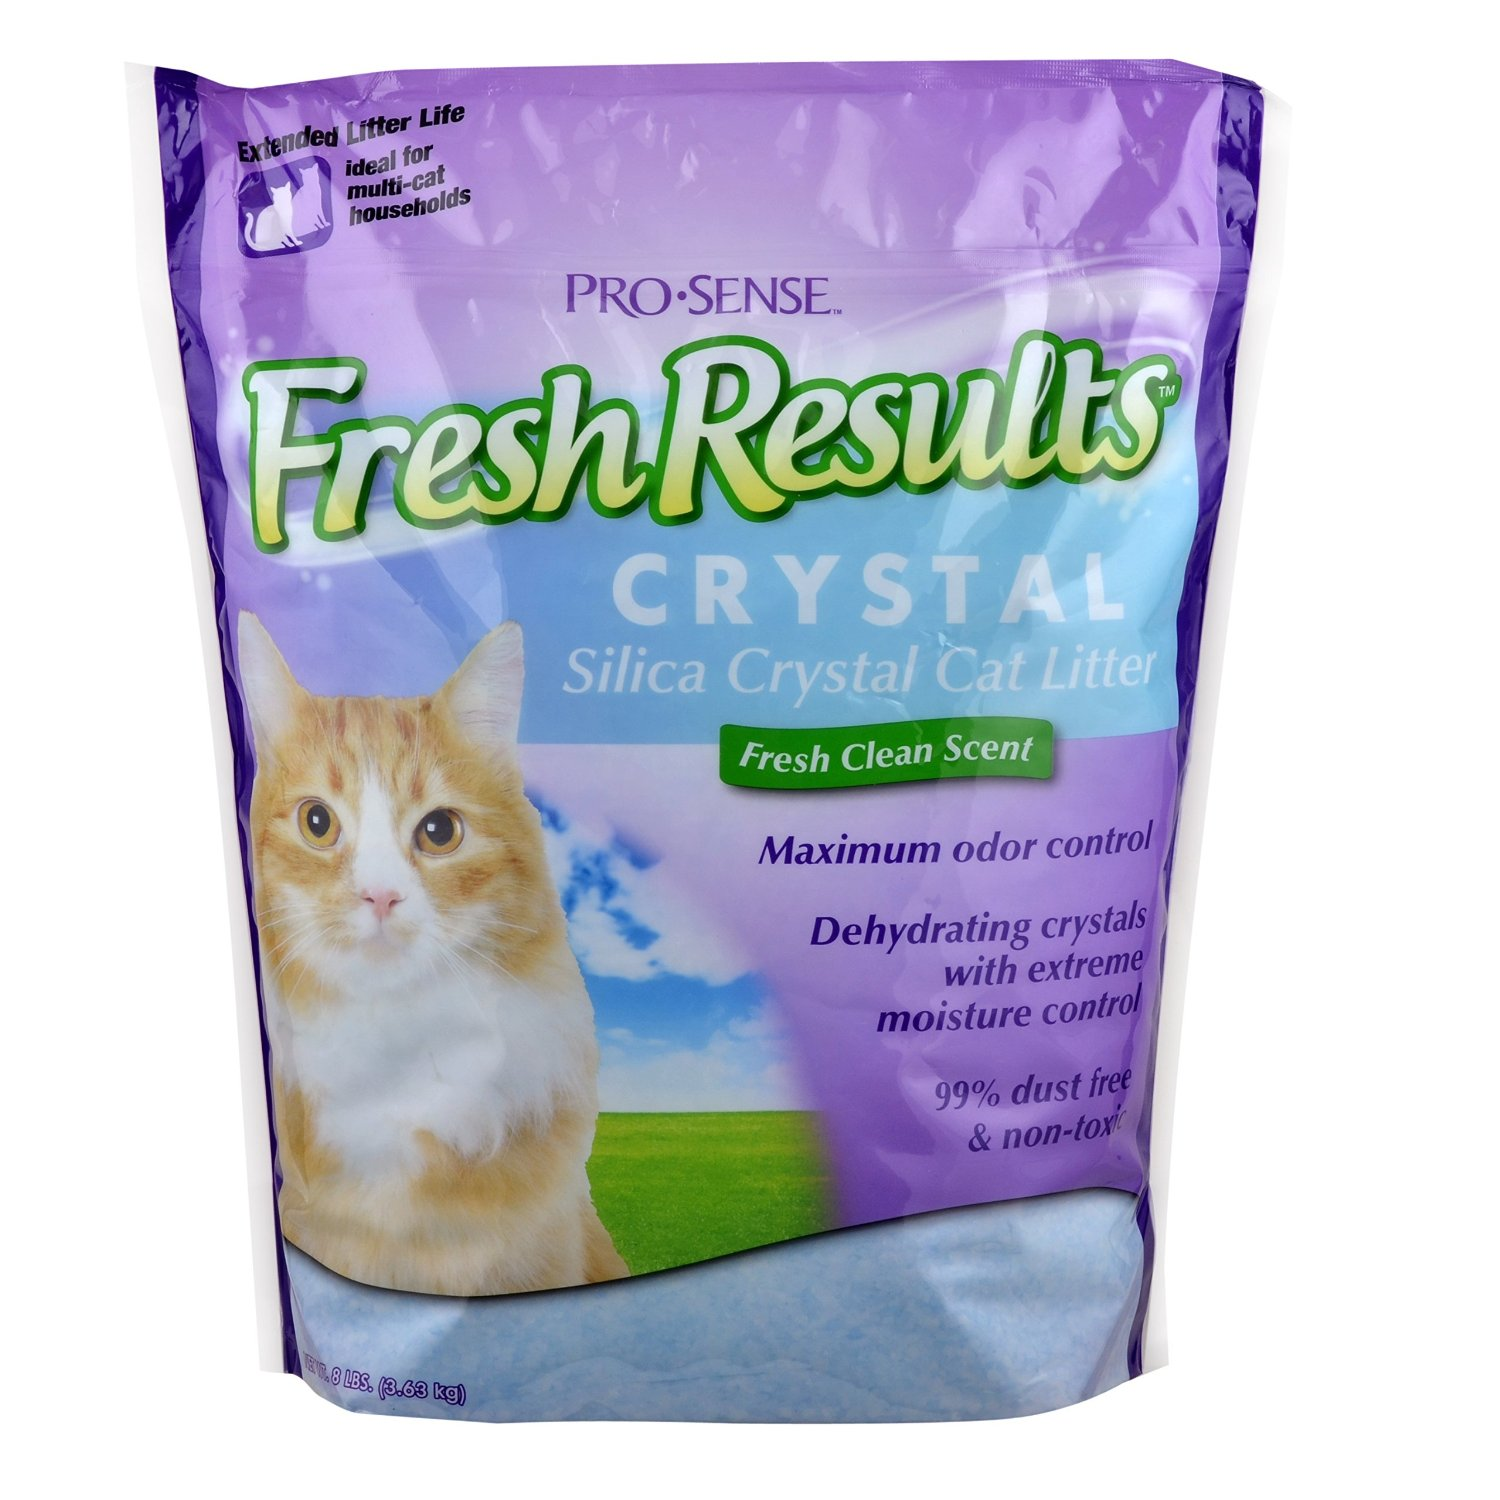 Pro-Sense Fresh Results Crystal Silica Cat Litter, 8-Pound